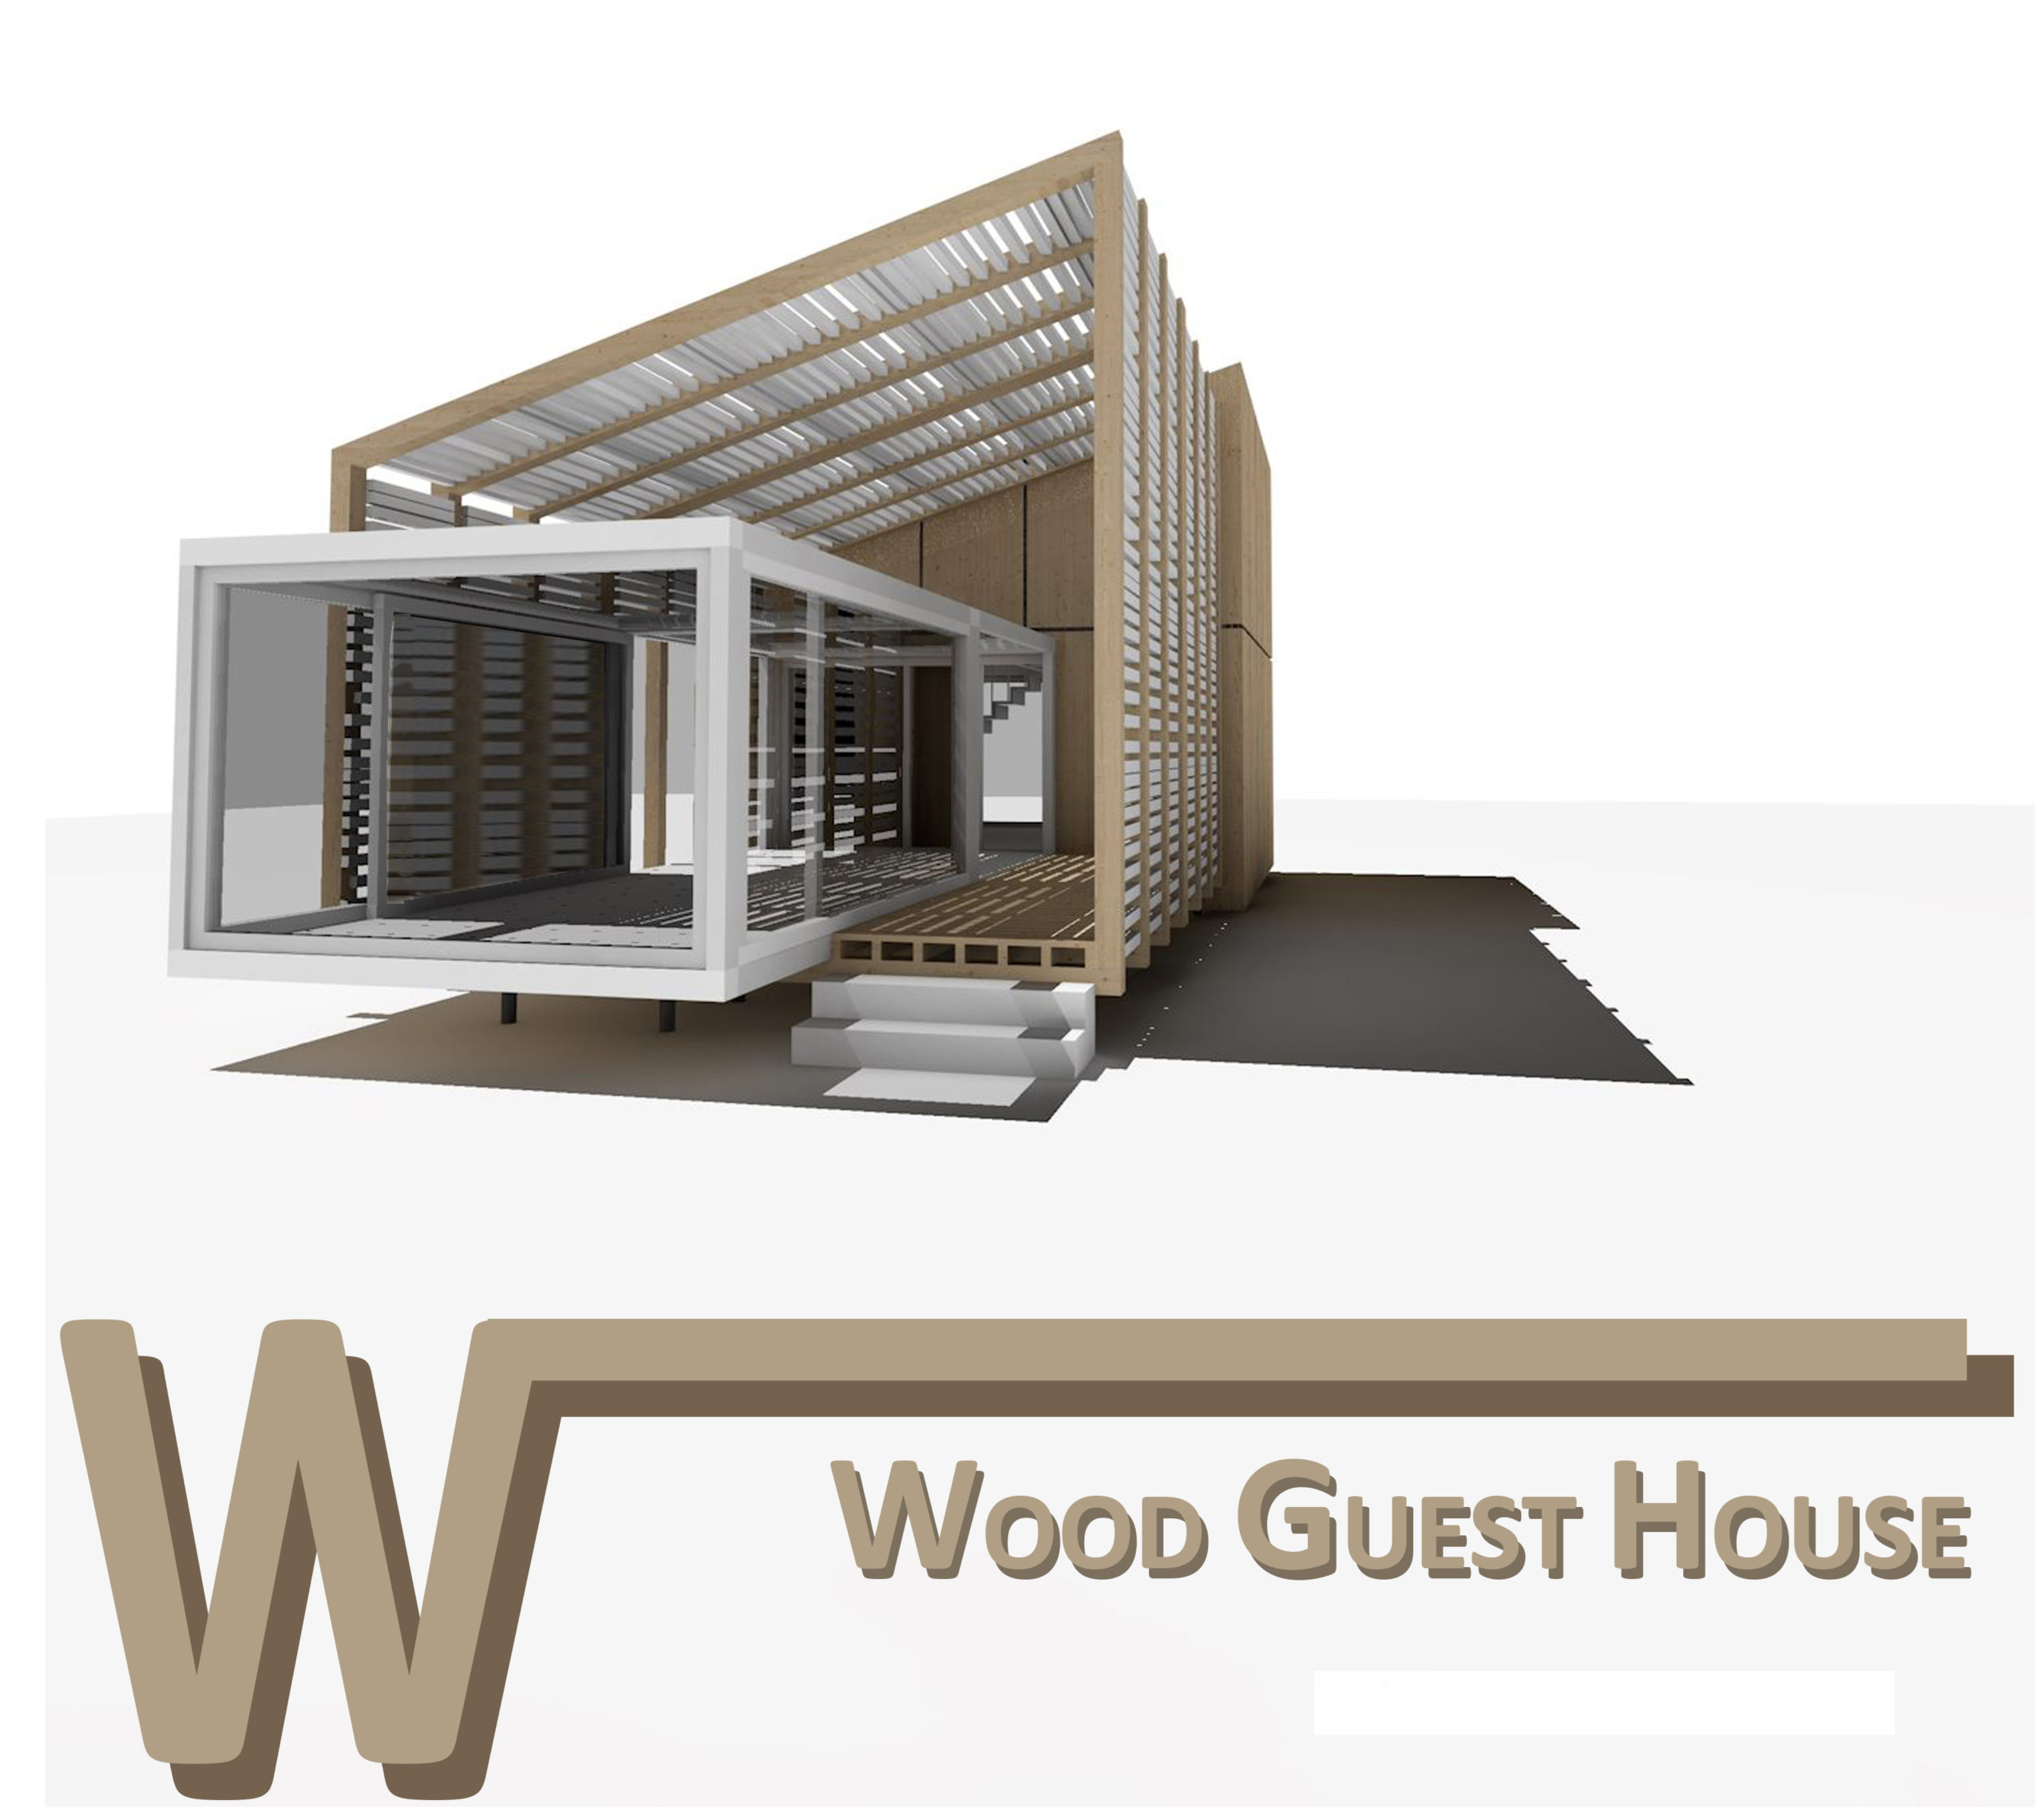 Wood Guest House